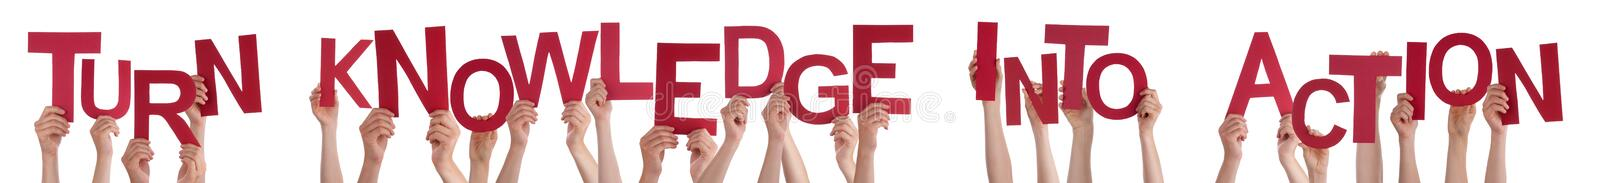 Hands Holding Straight Word Turn Knowledge Into Action stock photo